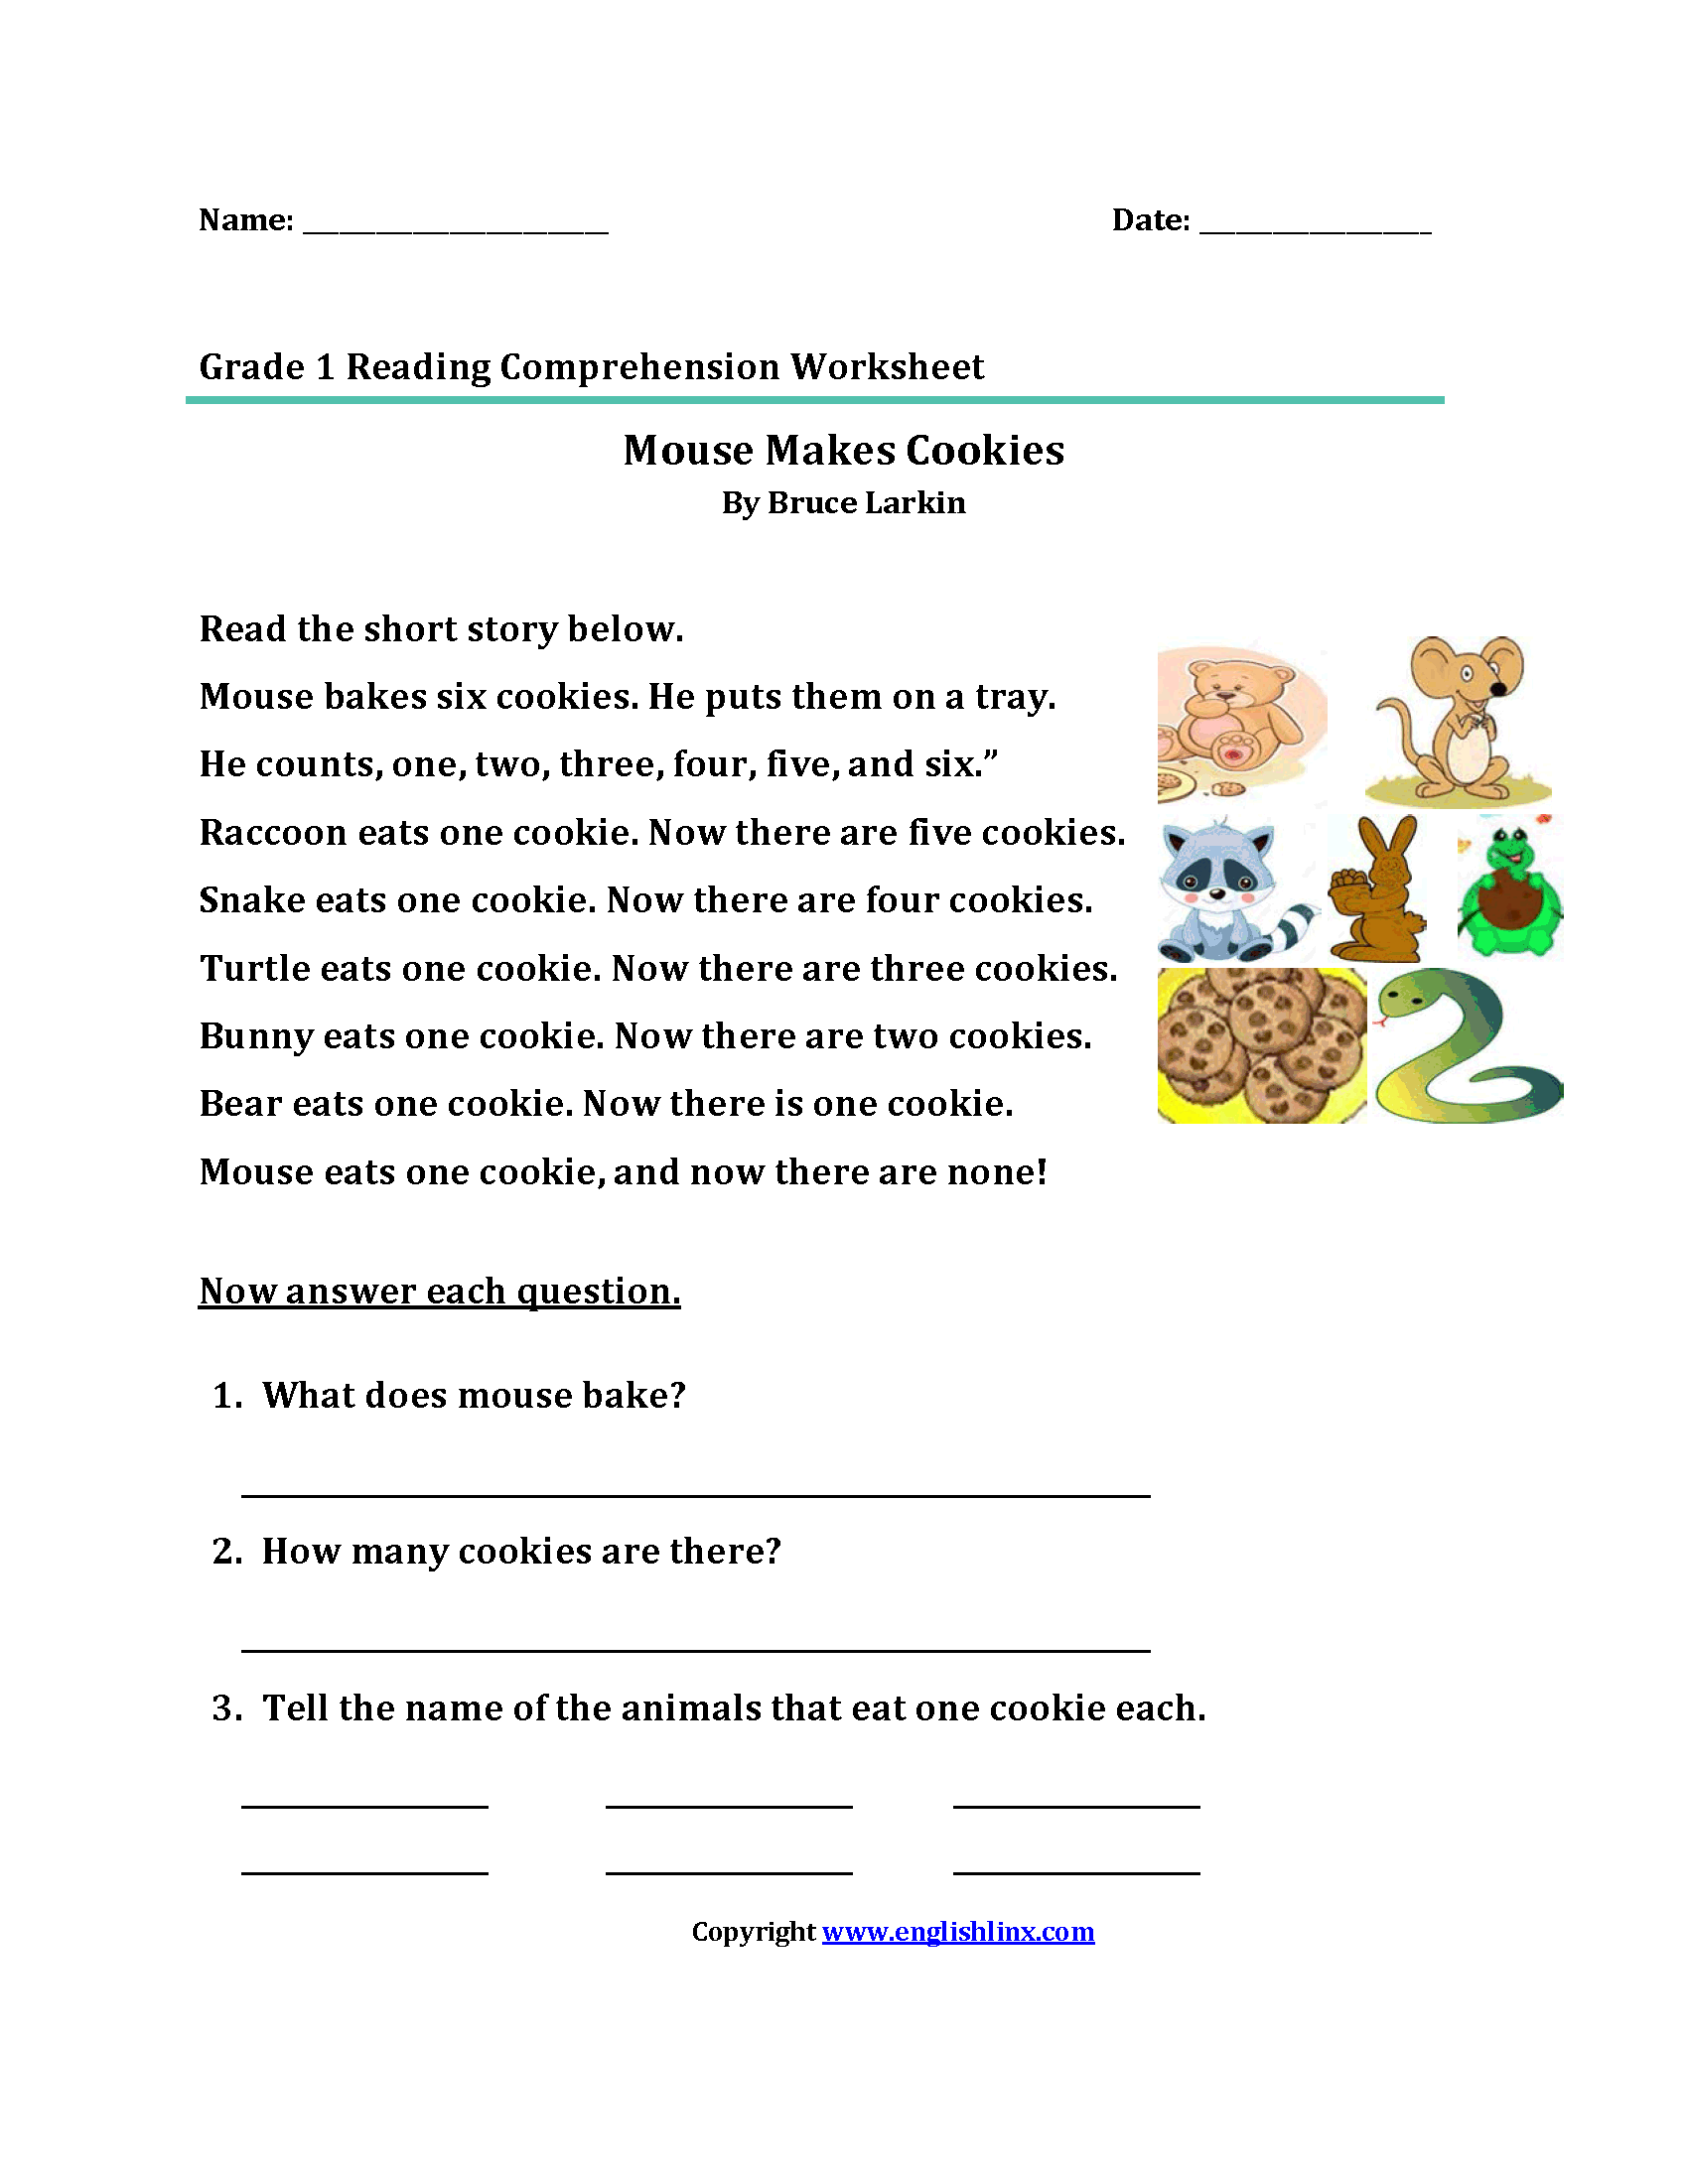 Worksheet 1st Grade Reading Passages With Questions worksheet 1st grade reading passages with questions mikyu free worksheets first worksheets